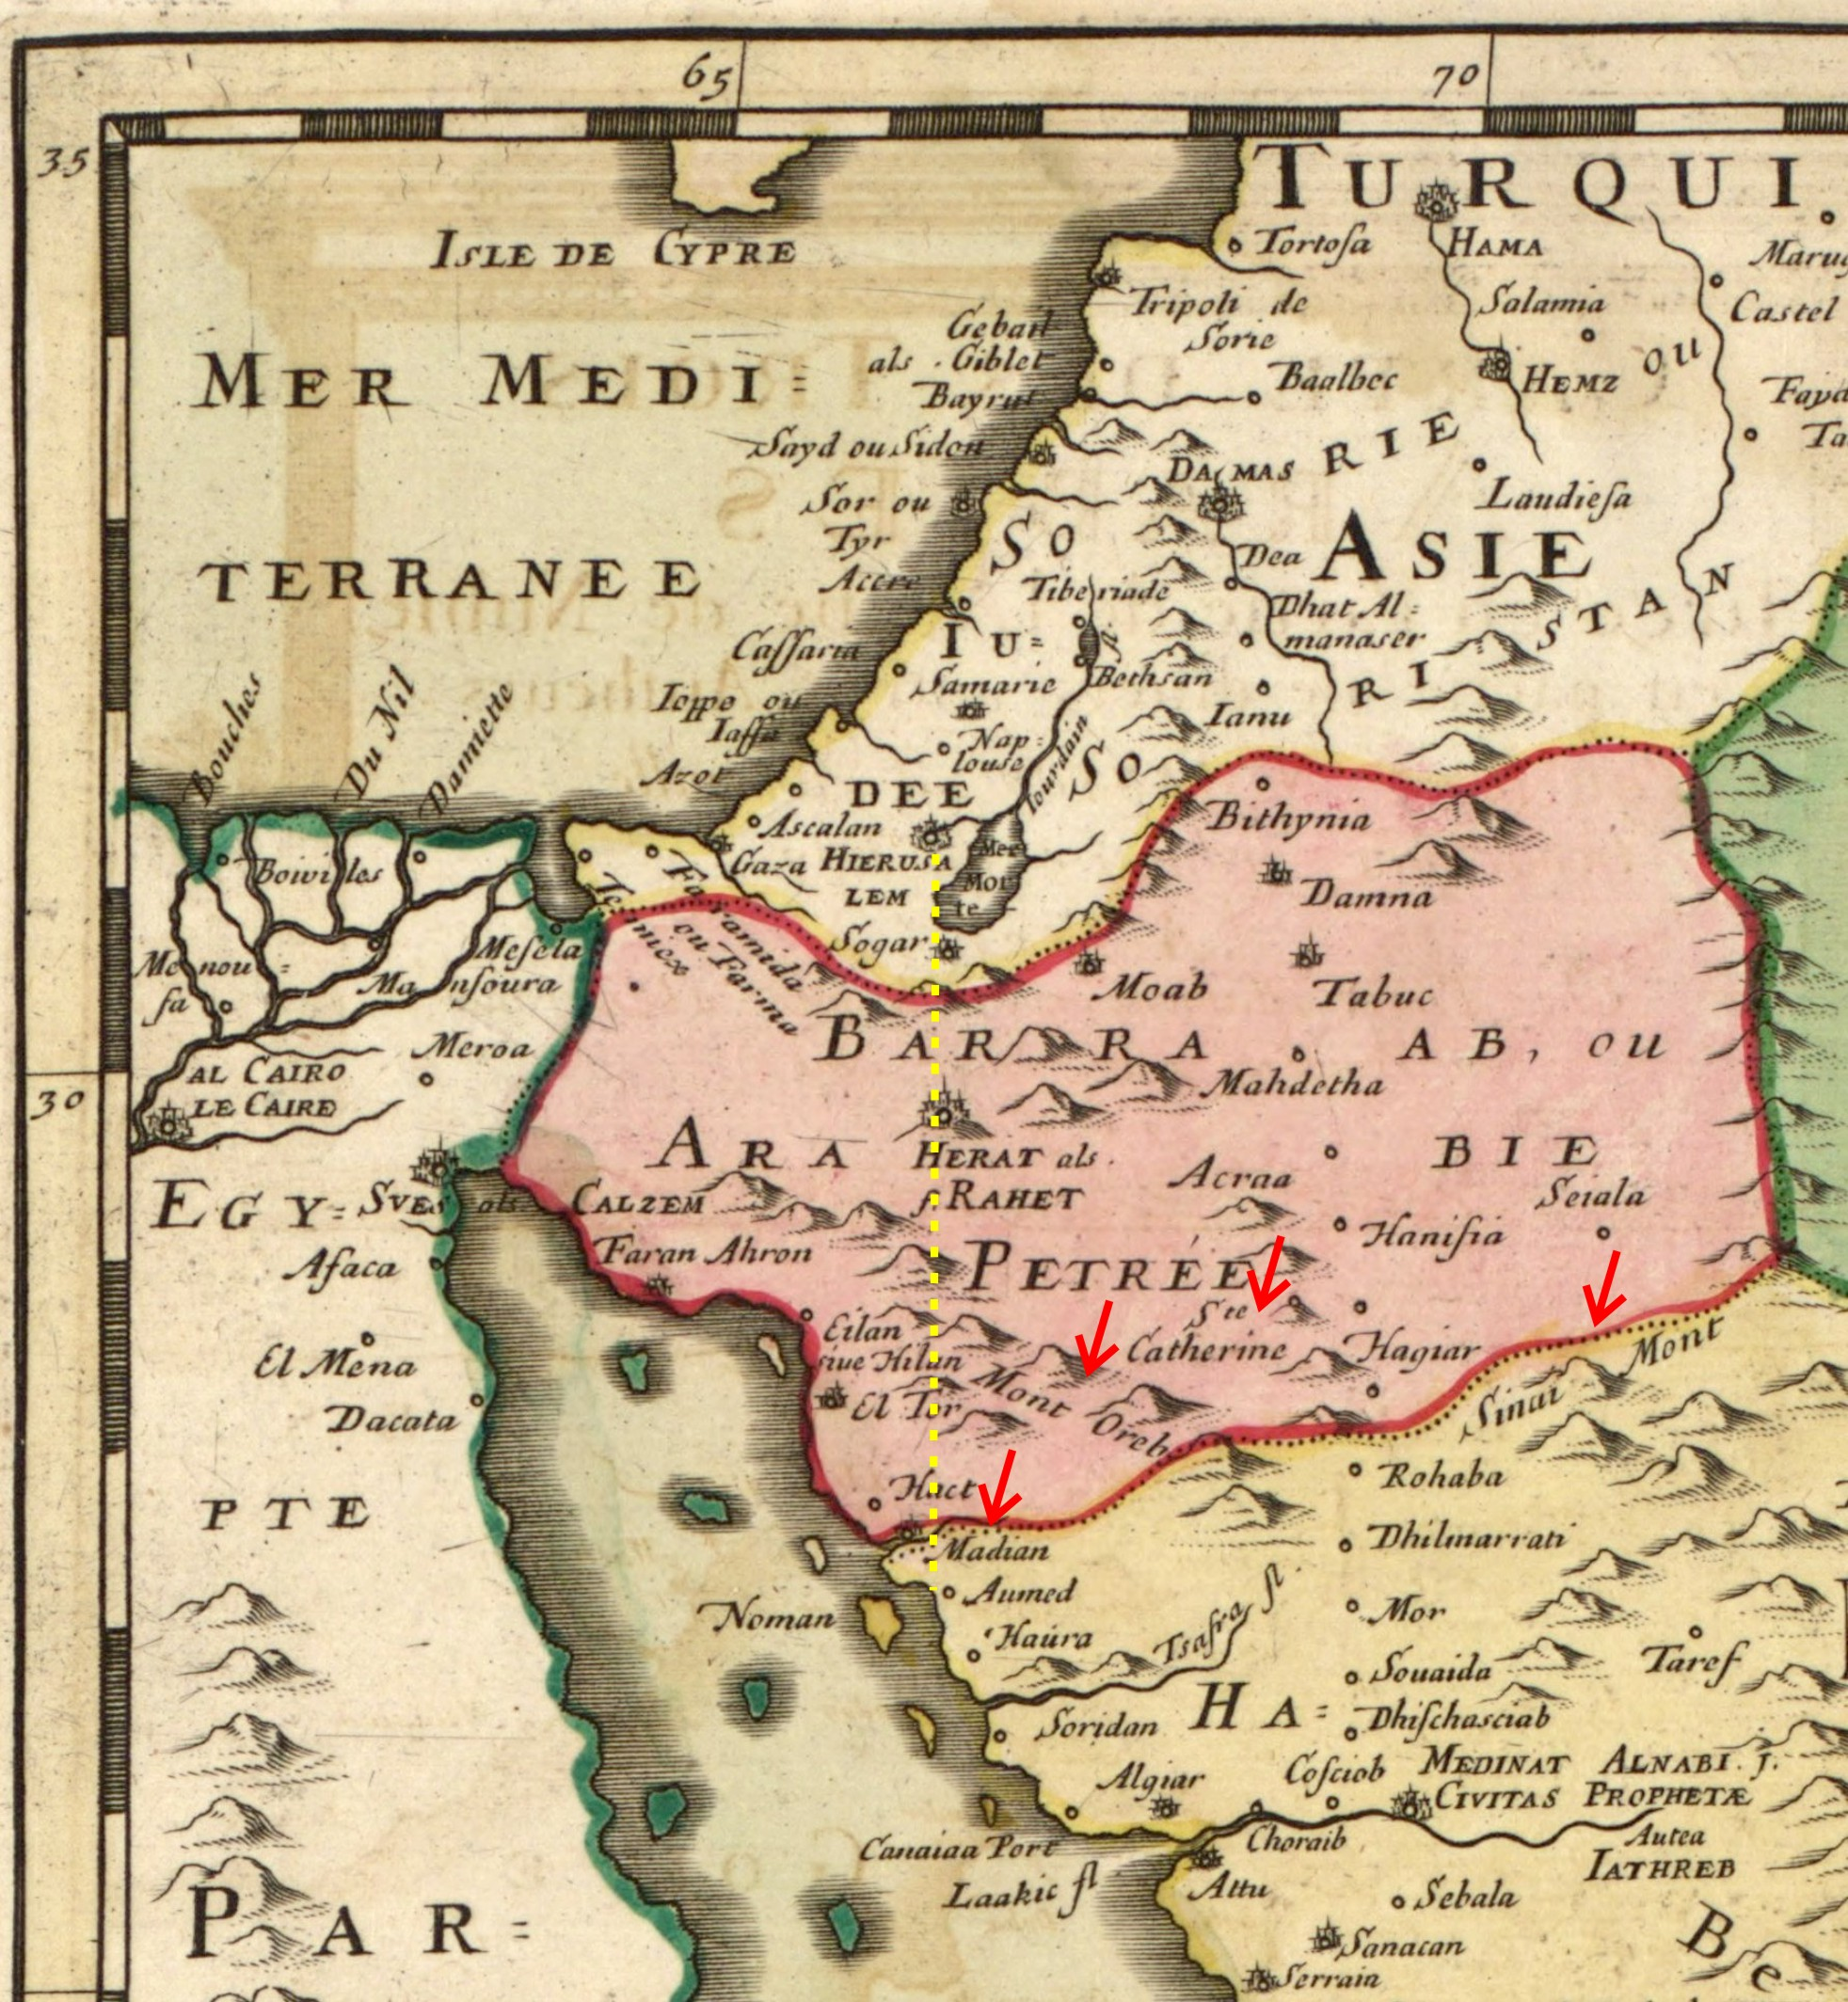 Figure 7. This 1654 map shows the Mount Sinai locations to the south and east of Jerusalem (from Carte Des Trois Arabies by Sanson).